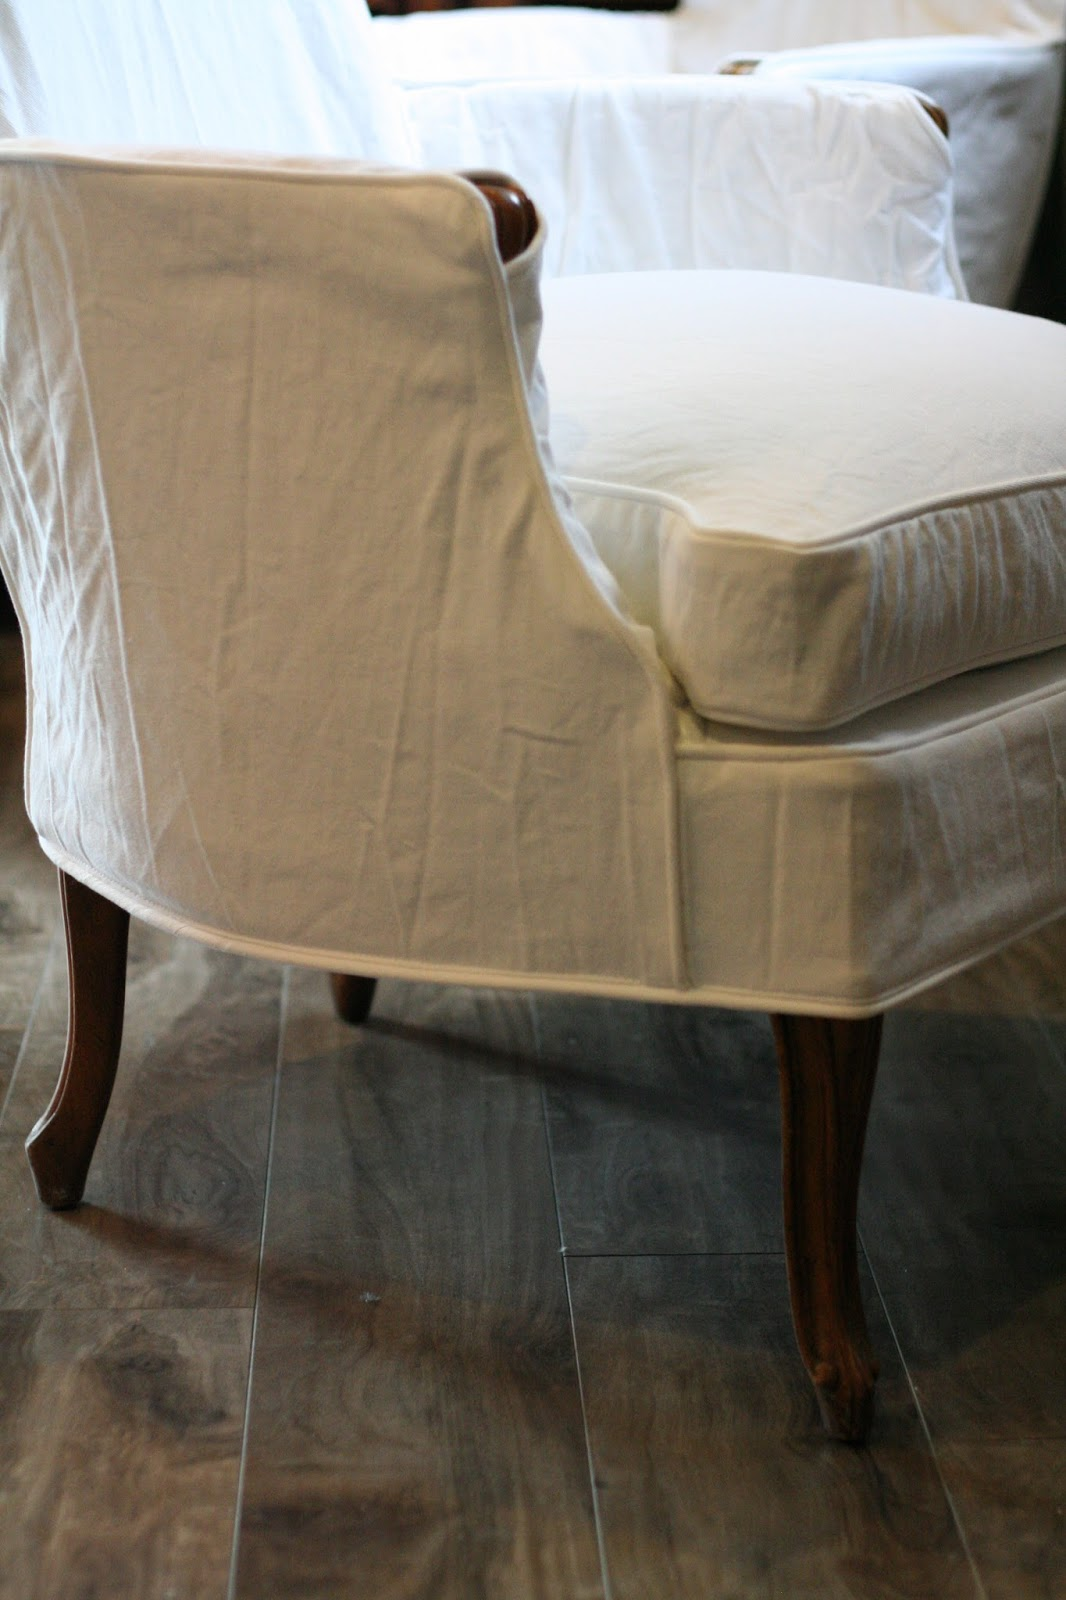 should i get chair covers for my wedding plus size office chairs uk custom slipcovers by shelley bergere exposed wood